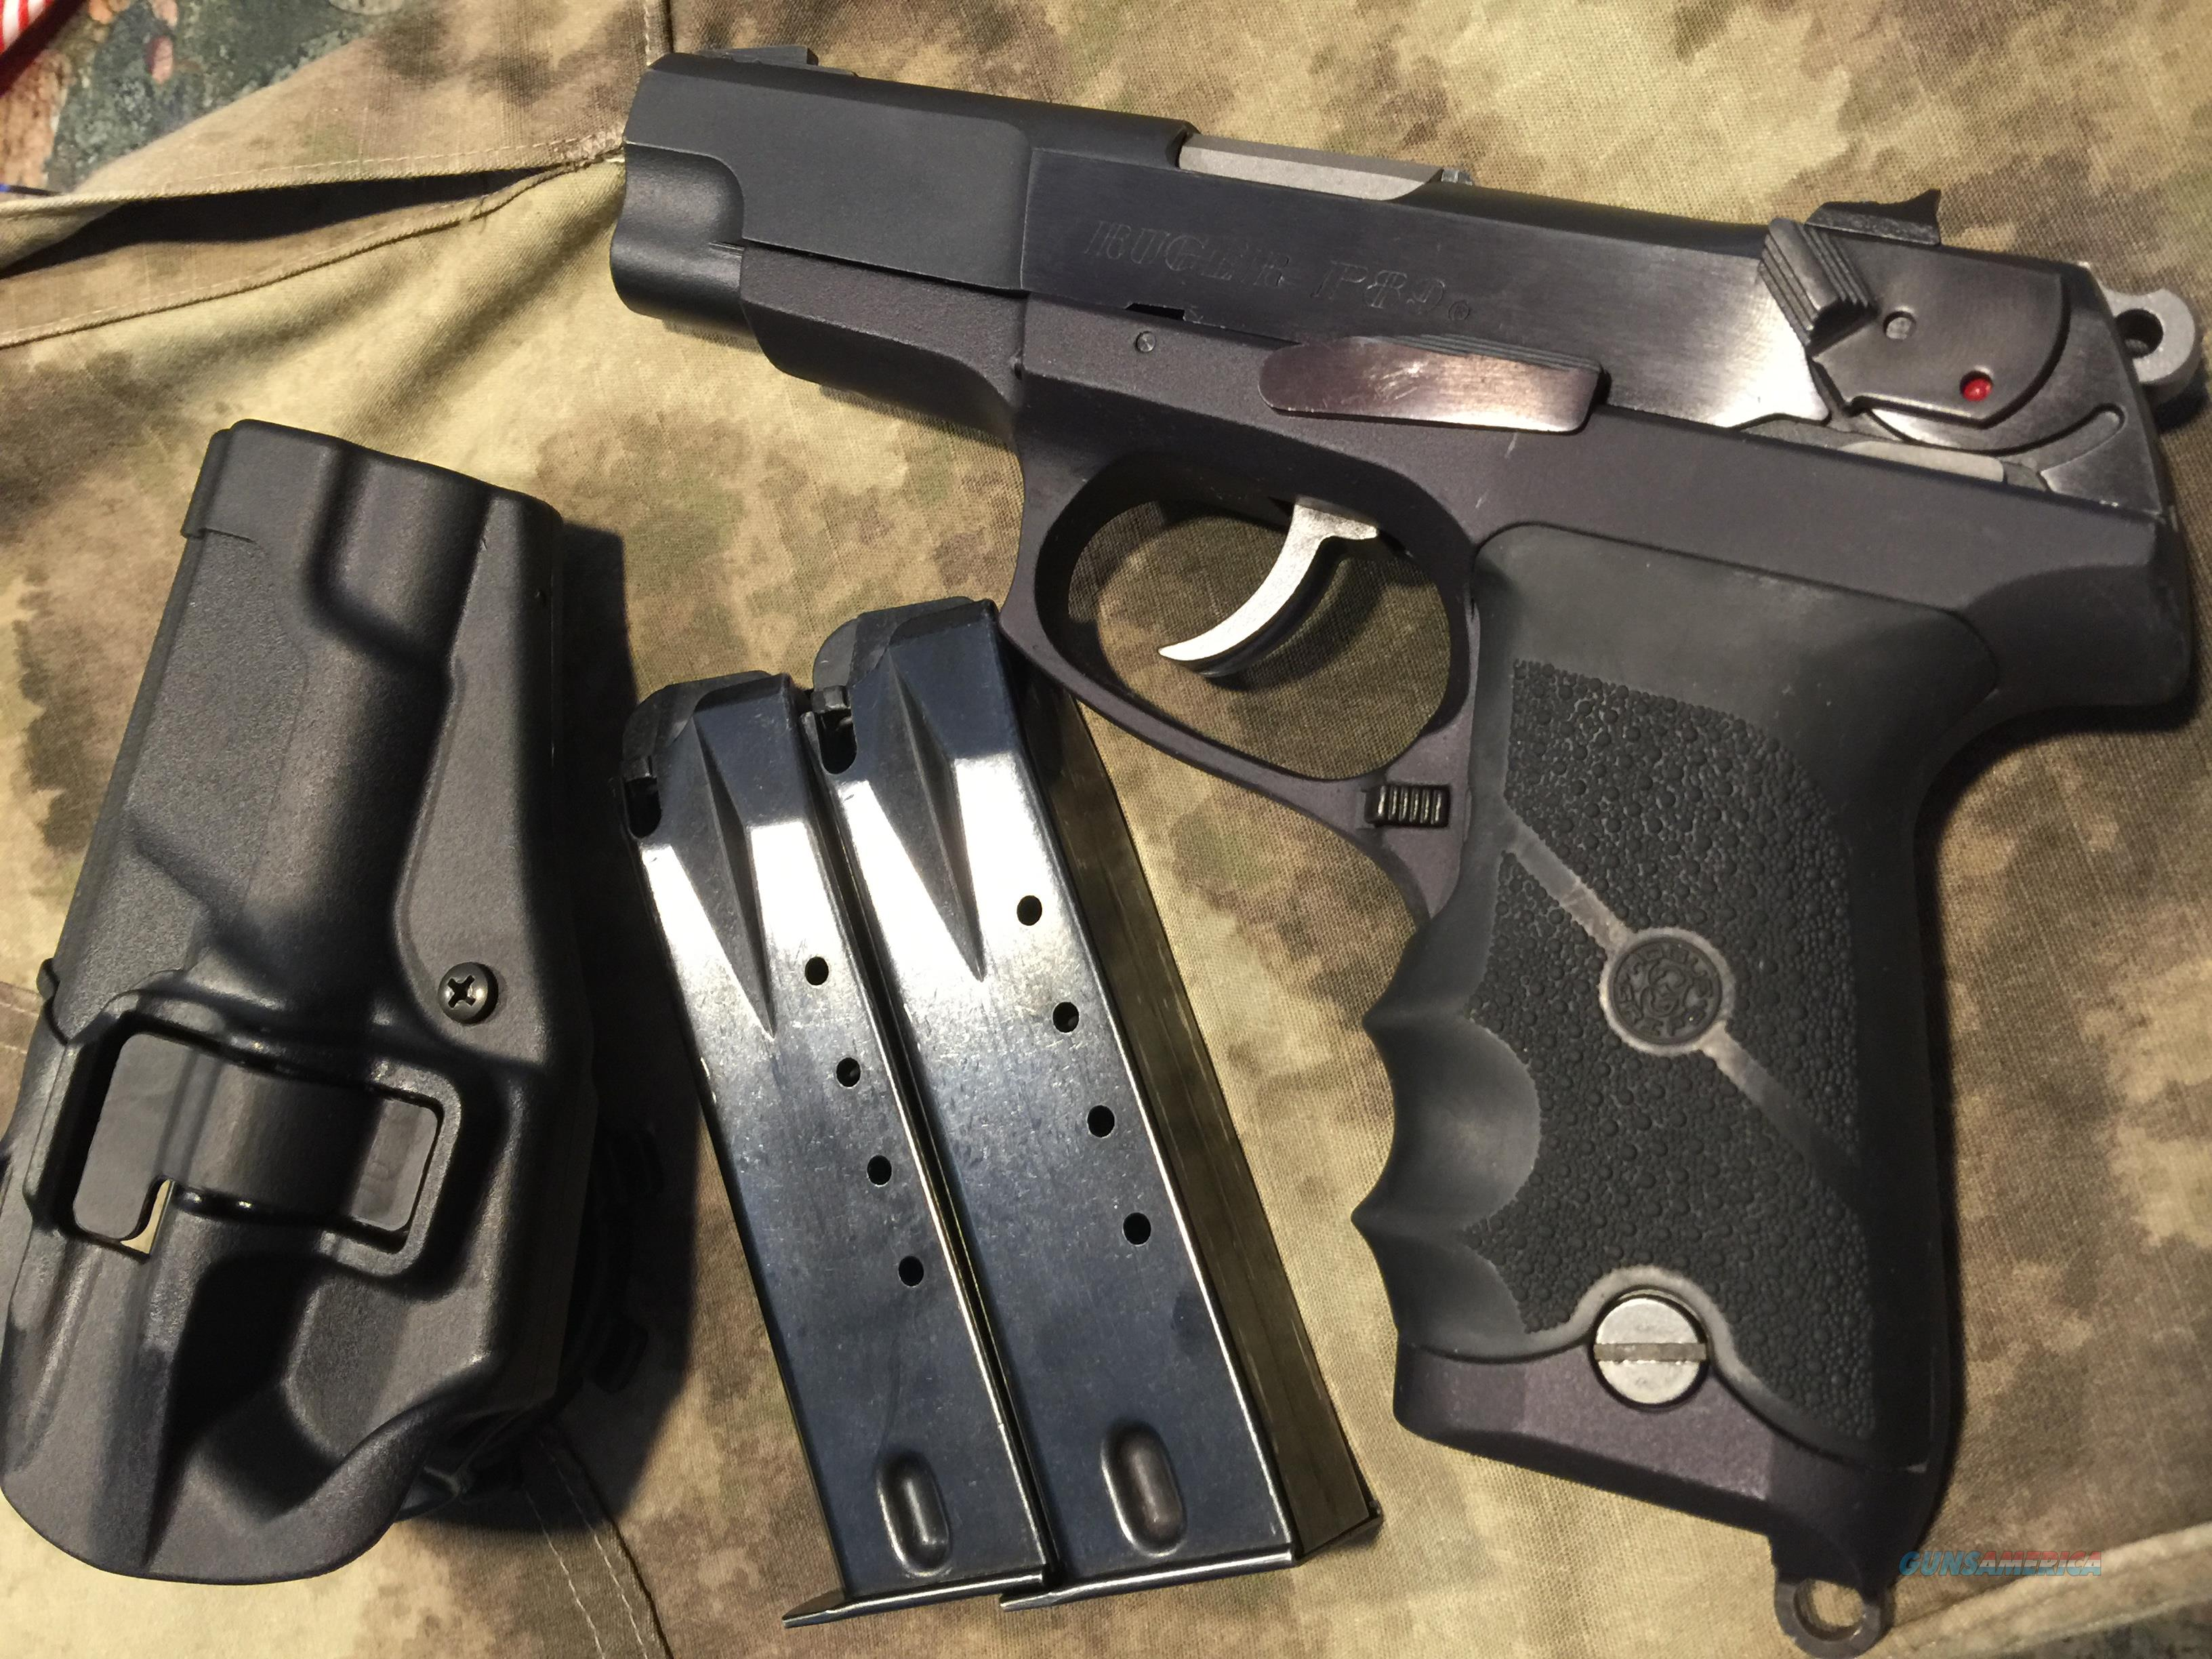 Ruger P89 9mm, In great condition, one owner, Hogue grips  Guns > Pistols > Ruger Semi-Auto Pistols > P-Series